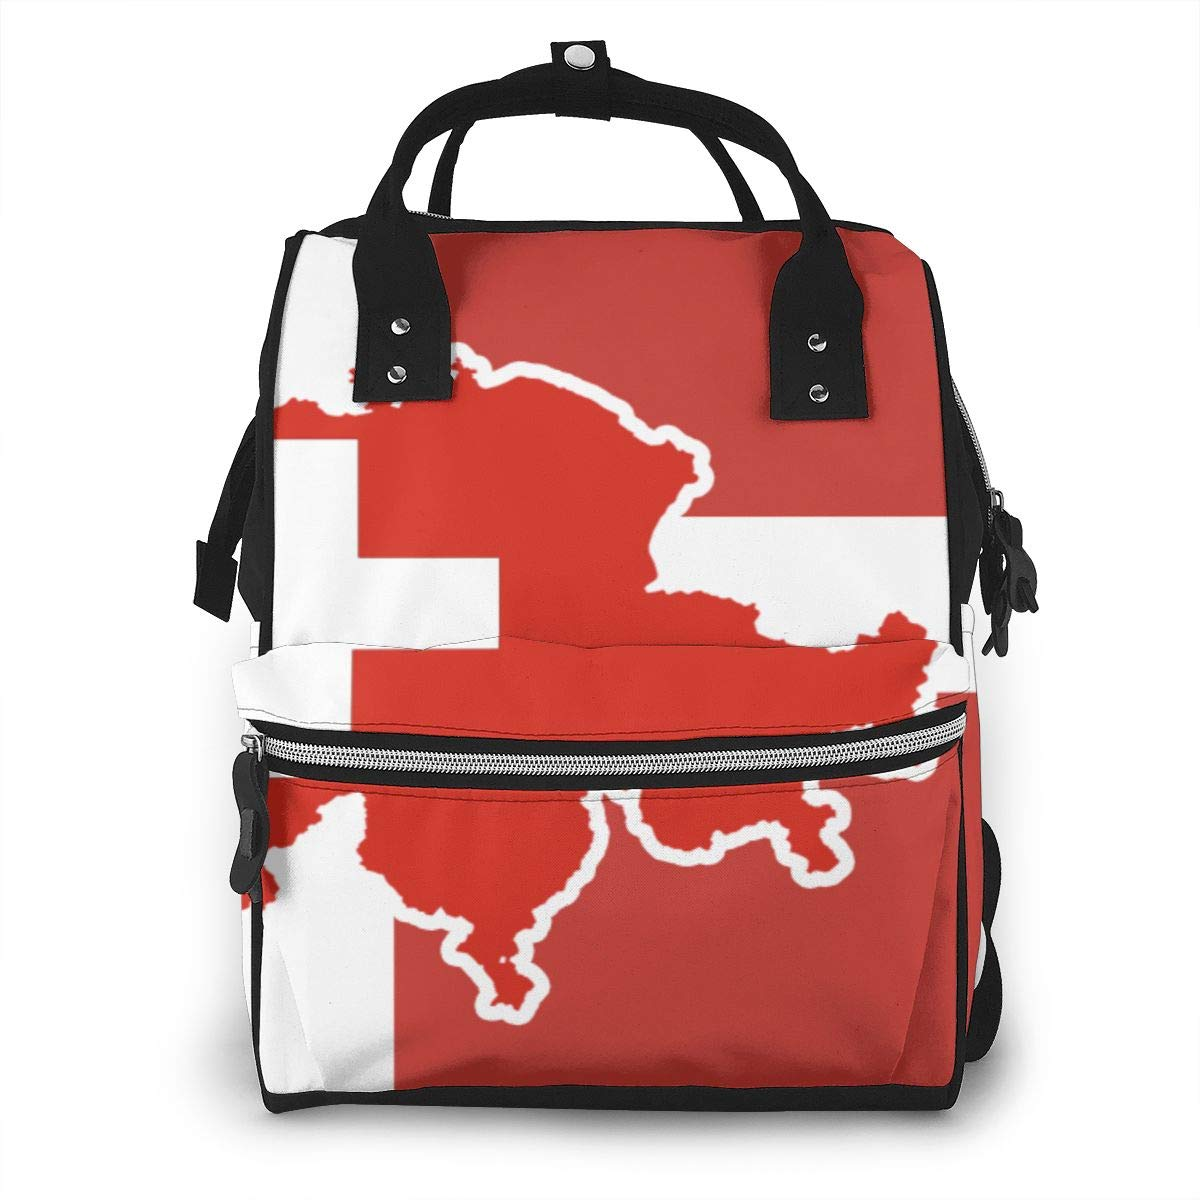 Flag for Switzerland Diaper Bag Backpack Waterproof Multi-Function Baby Changing Bags Maternity Nappy Bags Durable Large Capacity for Mom Dad Travel Baby Care